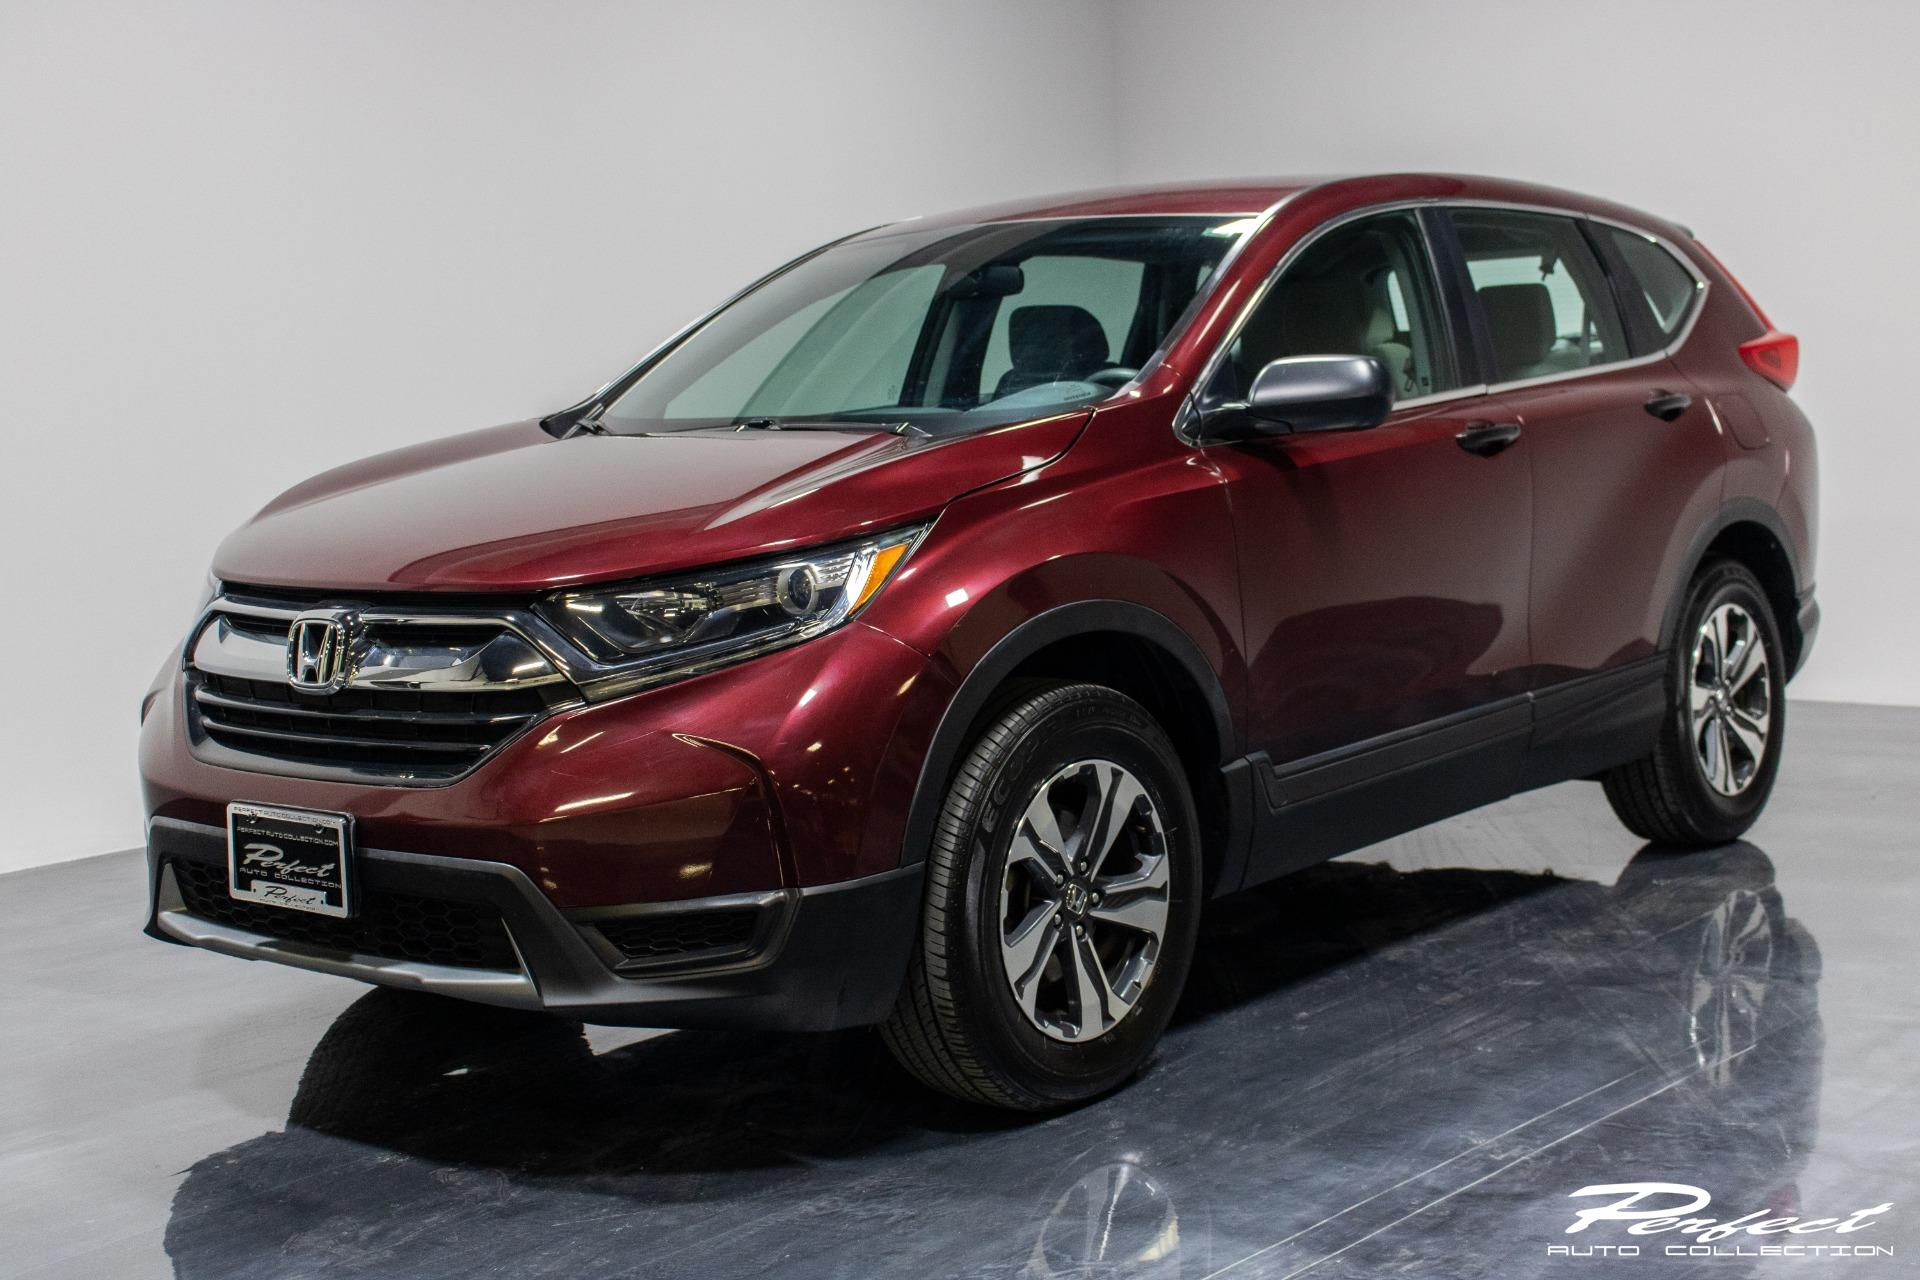 Used 2018 Honda CR-V LX Sport Utility 4D for sale Sold at Perfect Auto Collection in Akron OH 44310 1